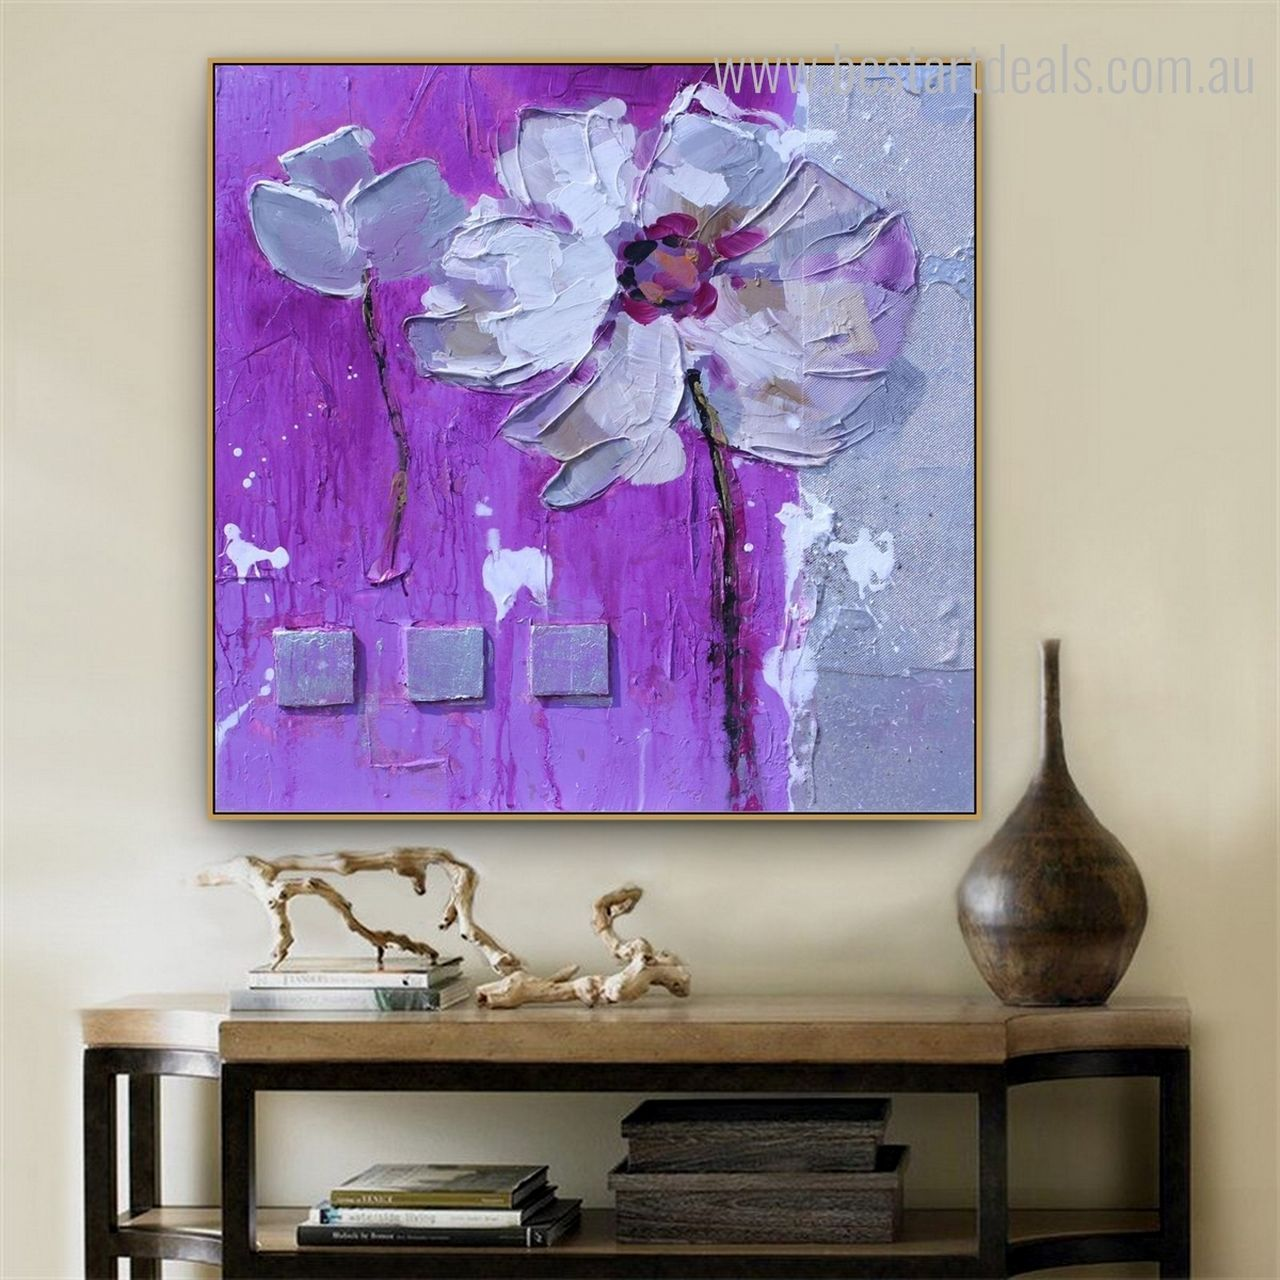 Embrace purple flower that would become the showcase point in your home once hung on your walls.  #floralartwork #artinvestment #canvasprints #printsforsale